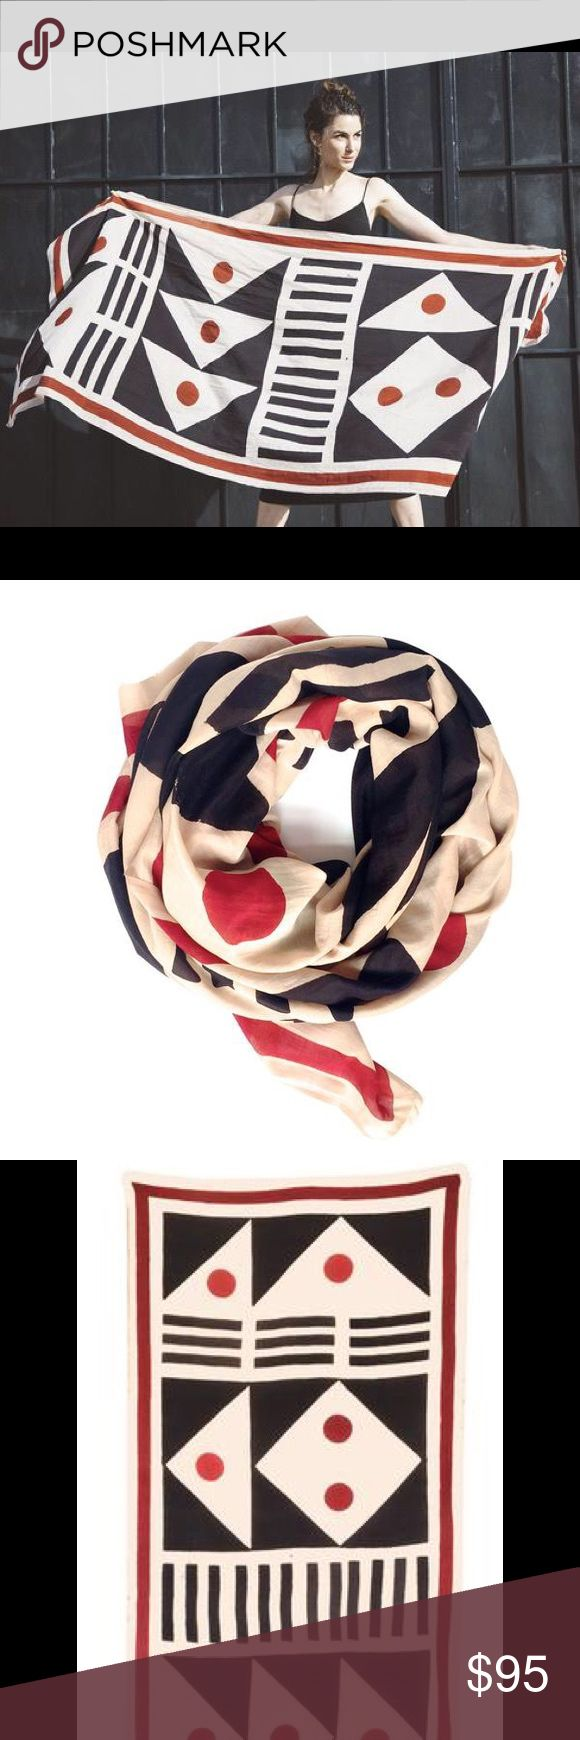 """Blockshop Textiles Signal scarf NWT NWT. I simply have too many scarves. This is brand new from the Blockshop  collection that came out about 1 mo. ago. Retails for $120+ shipping.  """"Bold pattern inspired by antique nautical flags found in Maine, in the colorway of natural red & black on soft beige harda ground. Striking as a wallhanging or scarf.""""  Variation in printing & color are hallmarks of hand block printing with natural dyes. Made in India.  25% silk, 75% cotton 34 x 86"""" natural…"""